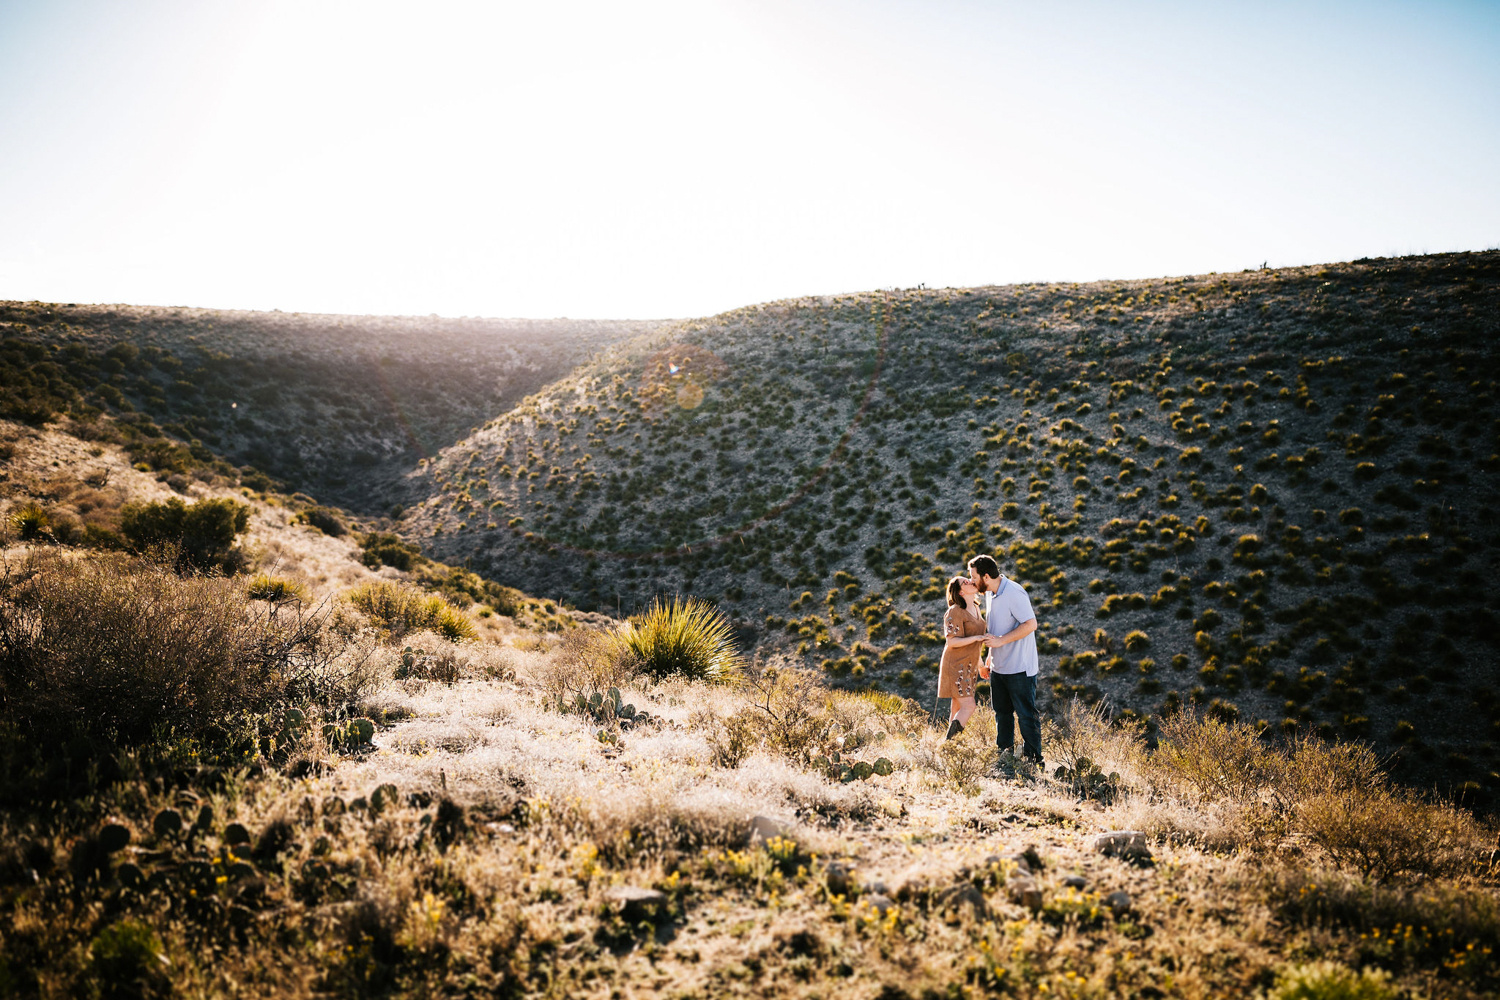 8. fun-carlsbad-photographer-andrea-van-orsouw-photography-wedding-natural-adventurous-new-mexico-3.jpg